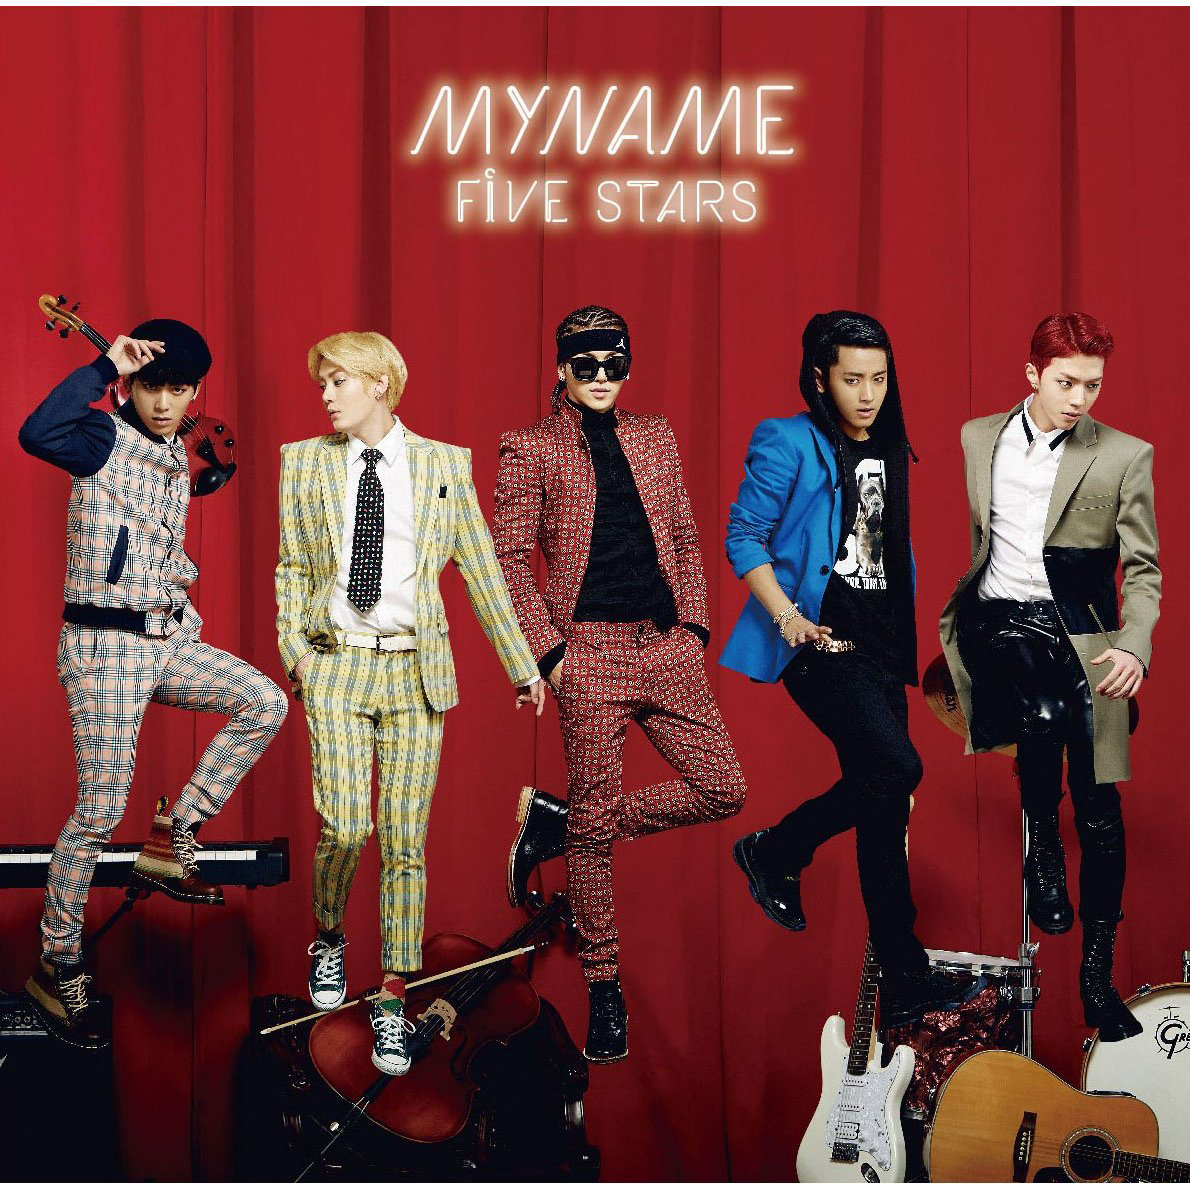 MYNAME – FIVE STARS (Japanese)